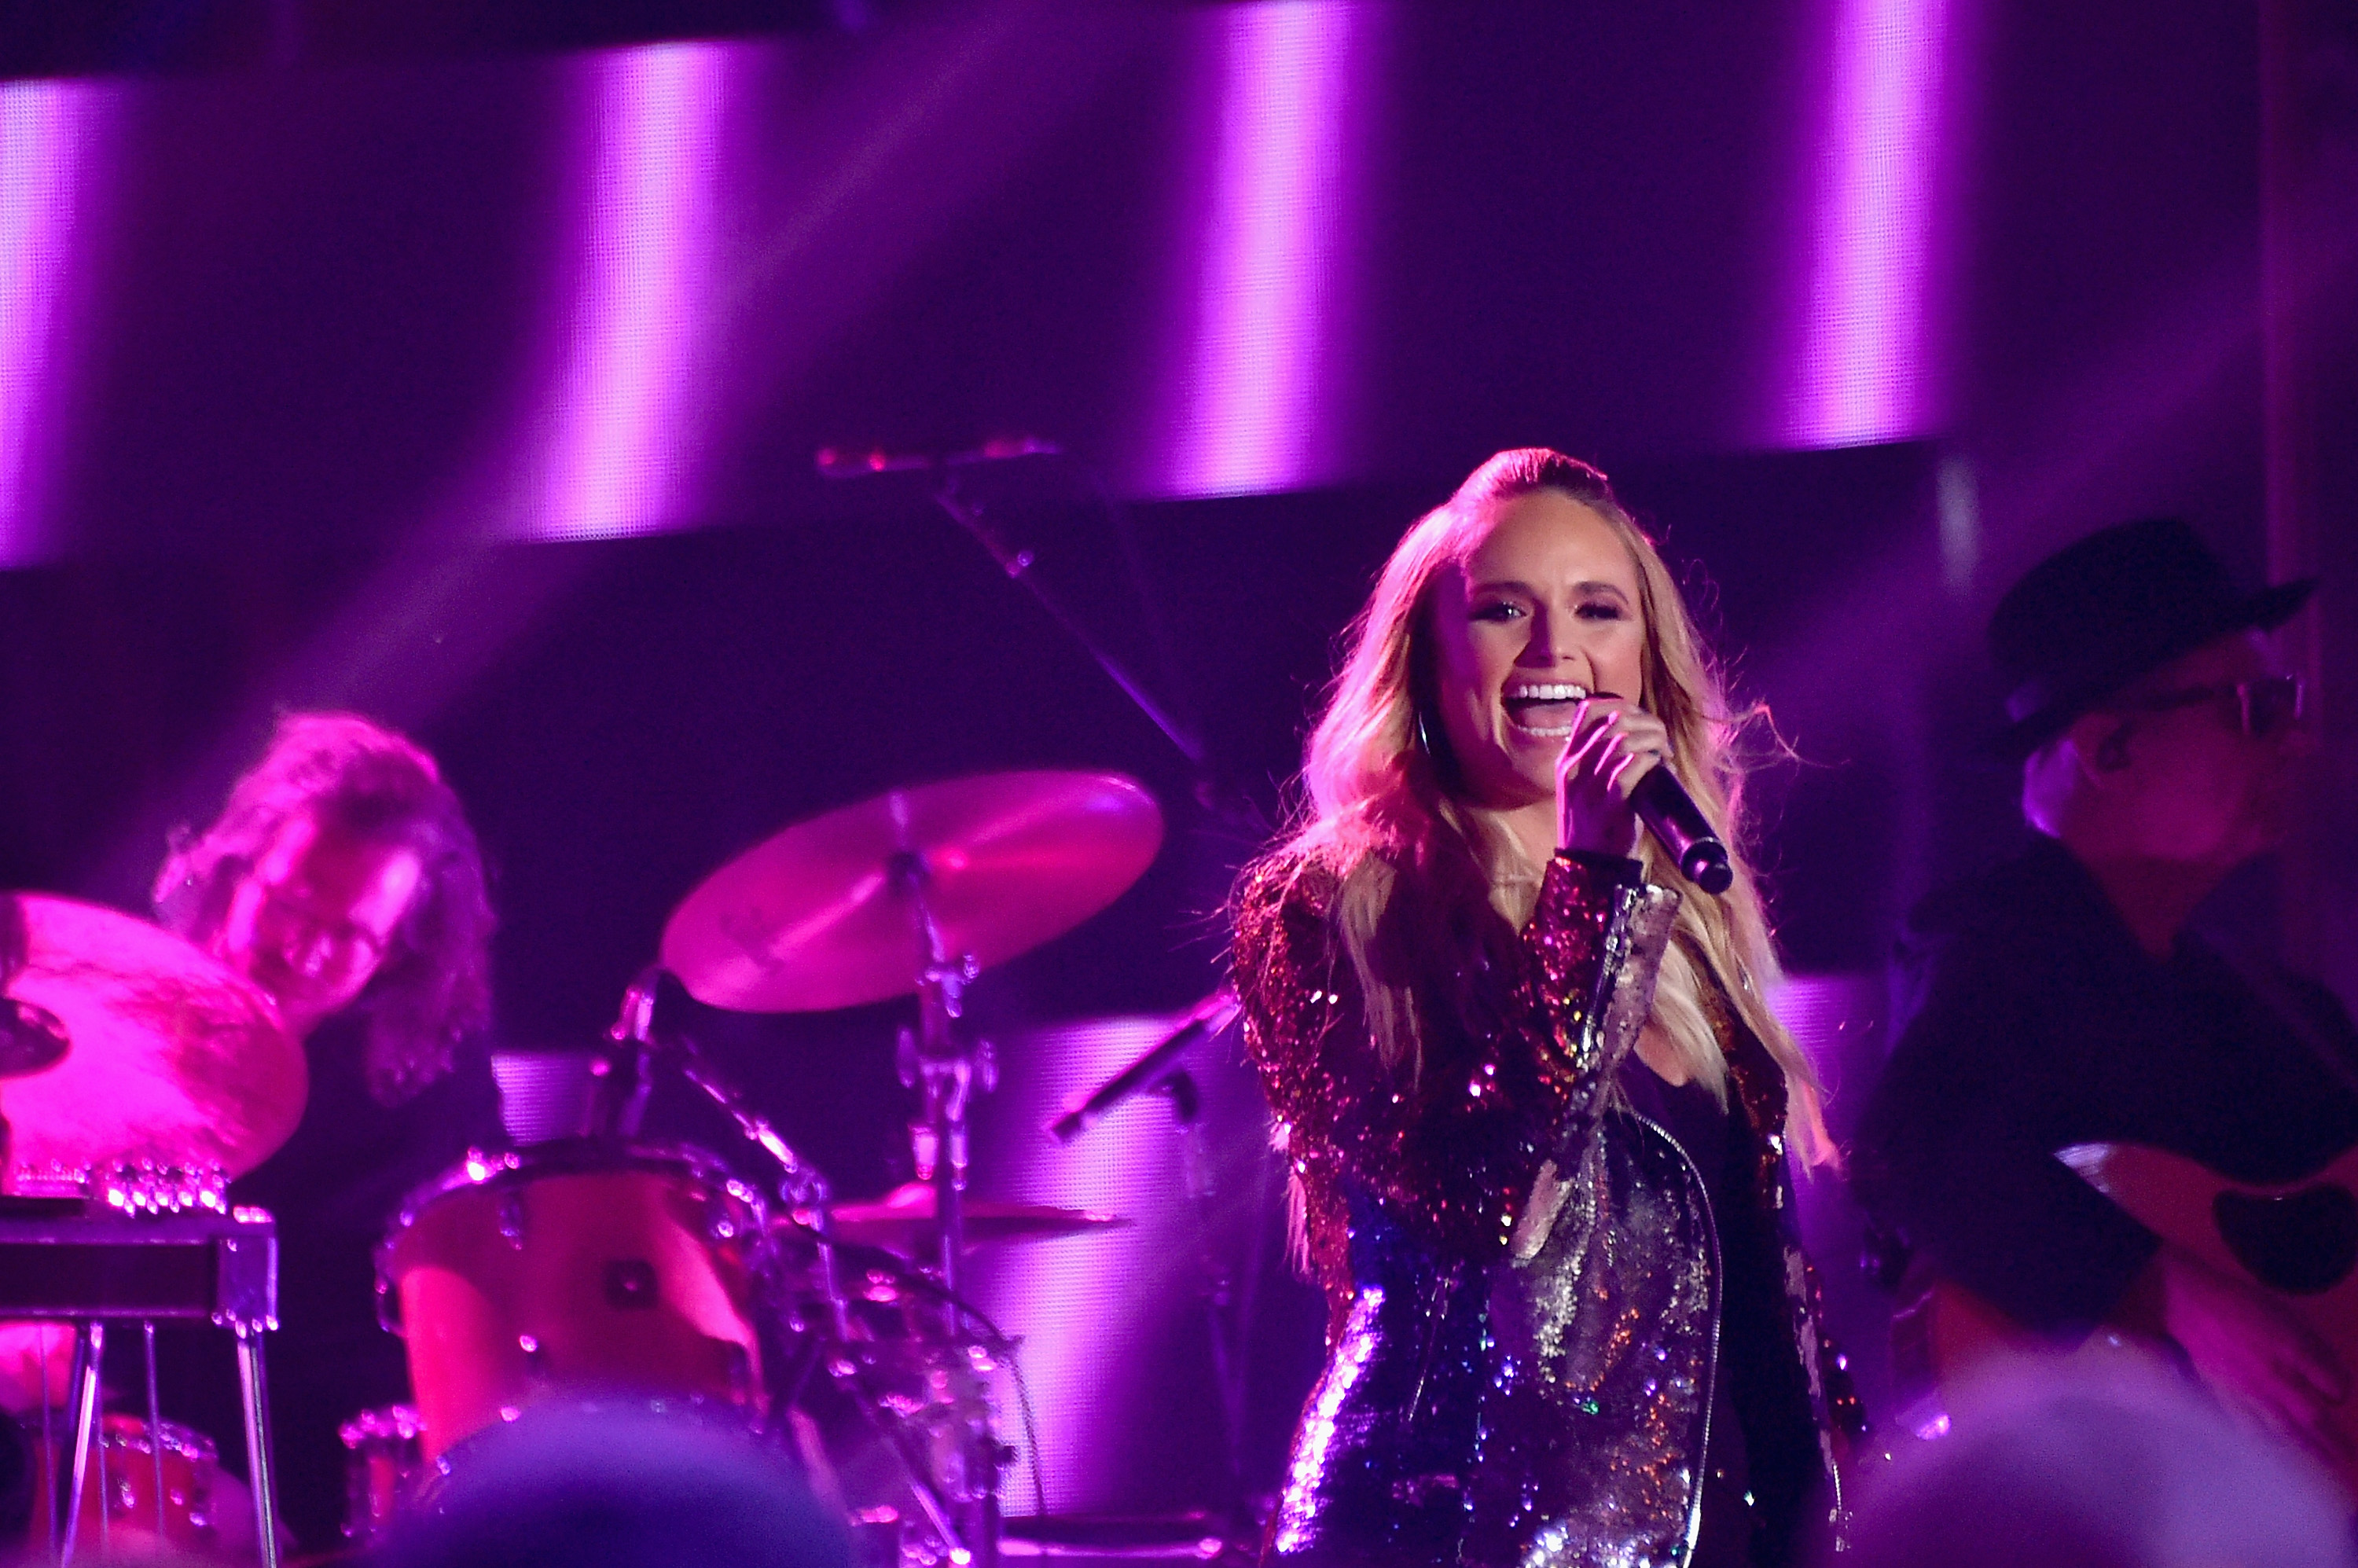 Miranda Lambert perfroms Pink Sunglasses onstage during the 2017 CMT Music Awards at the Music City Center